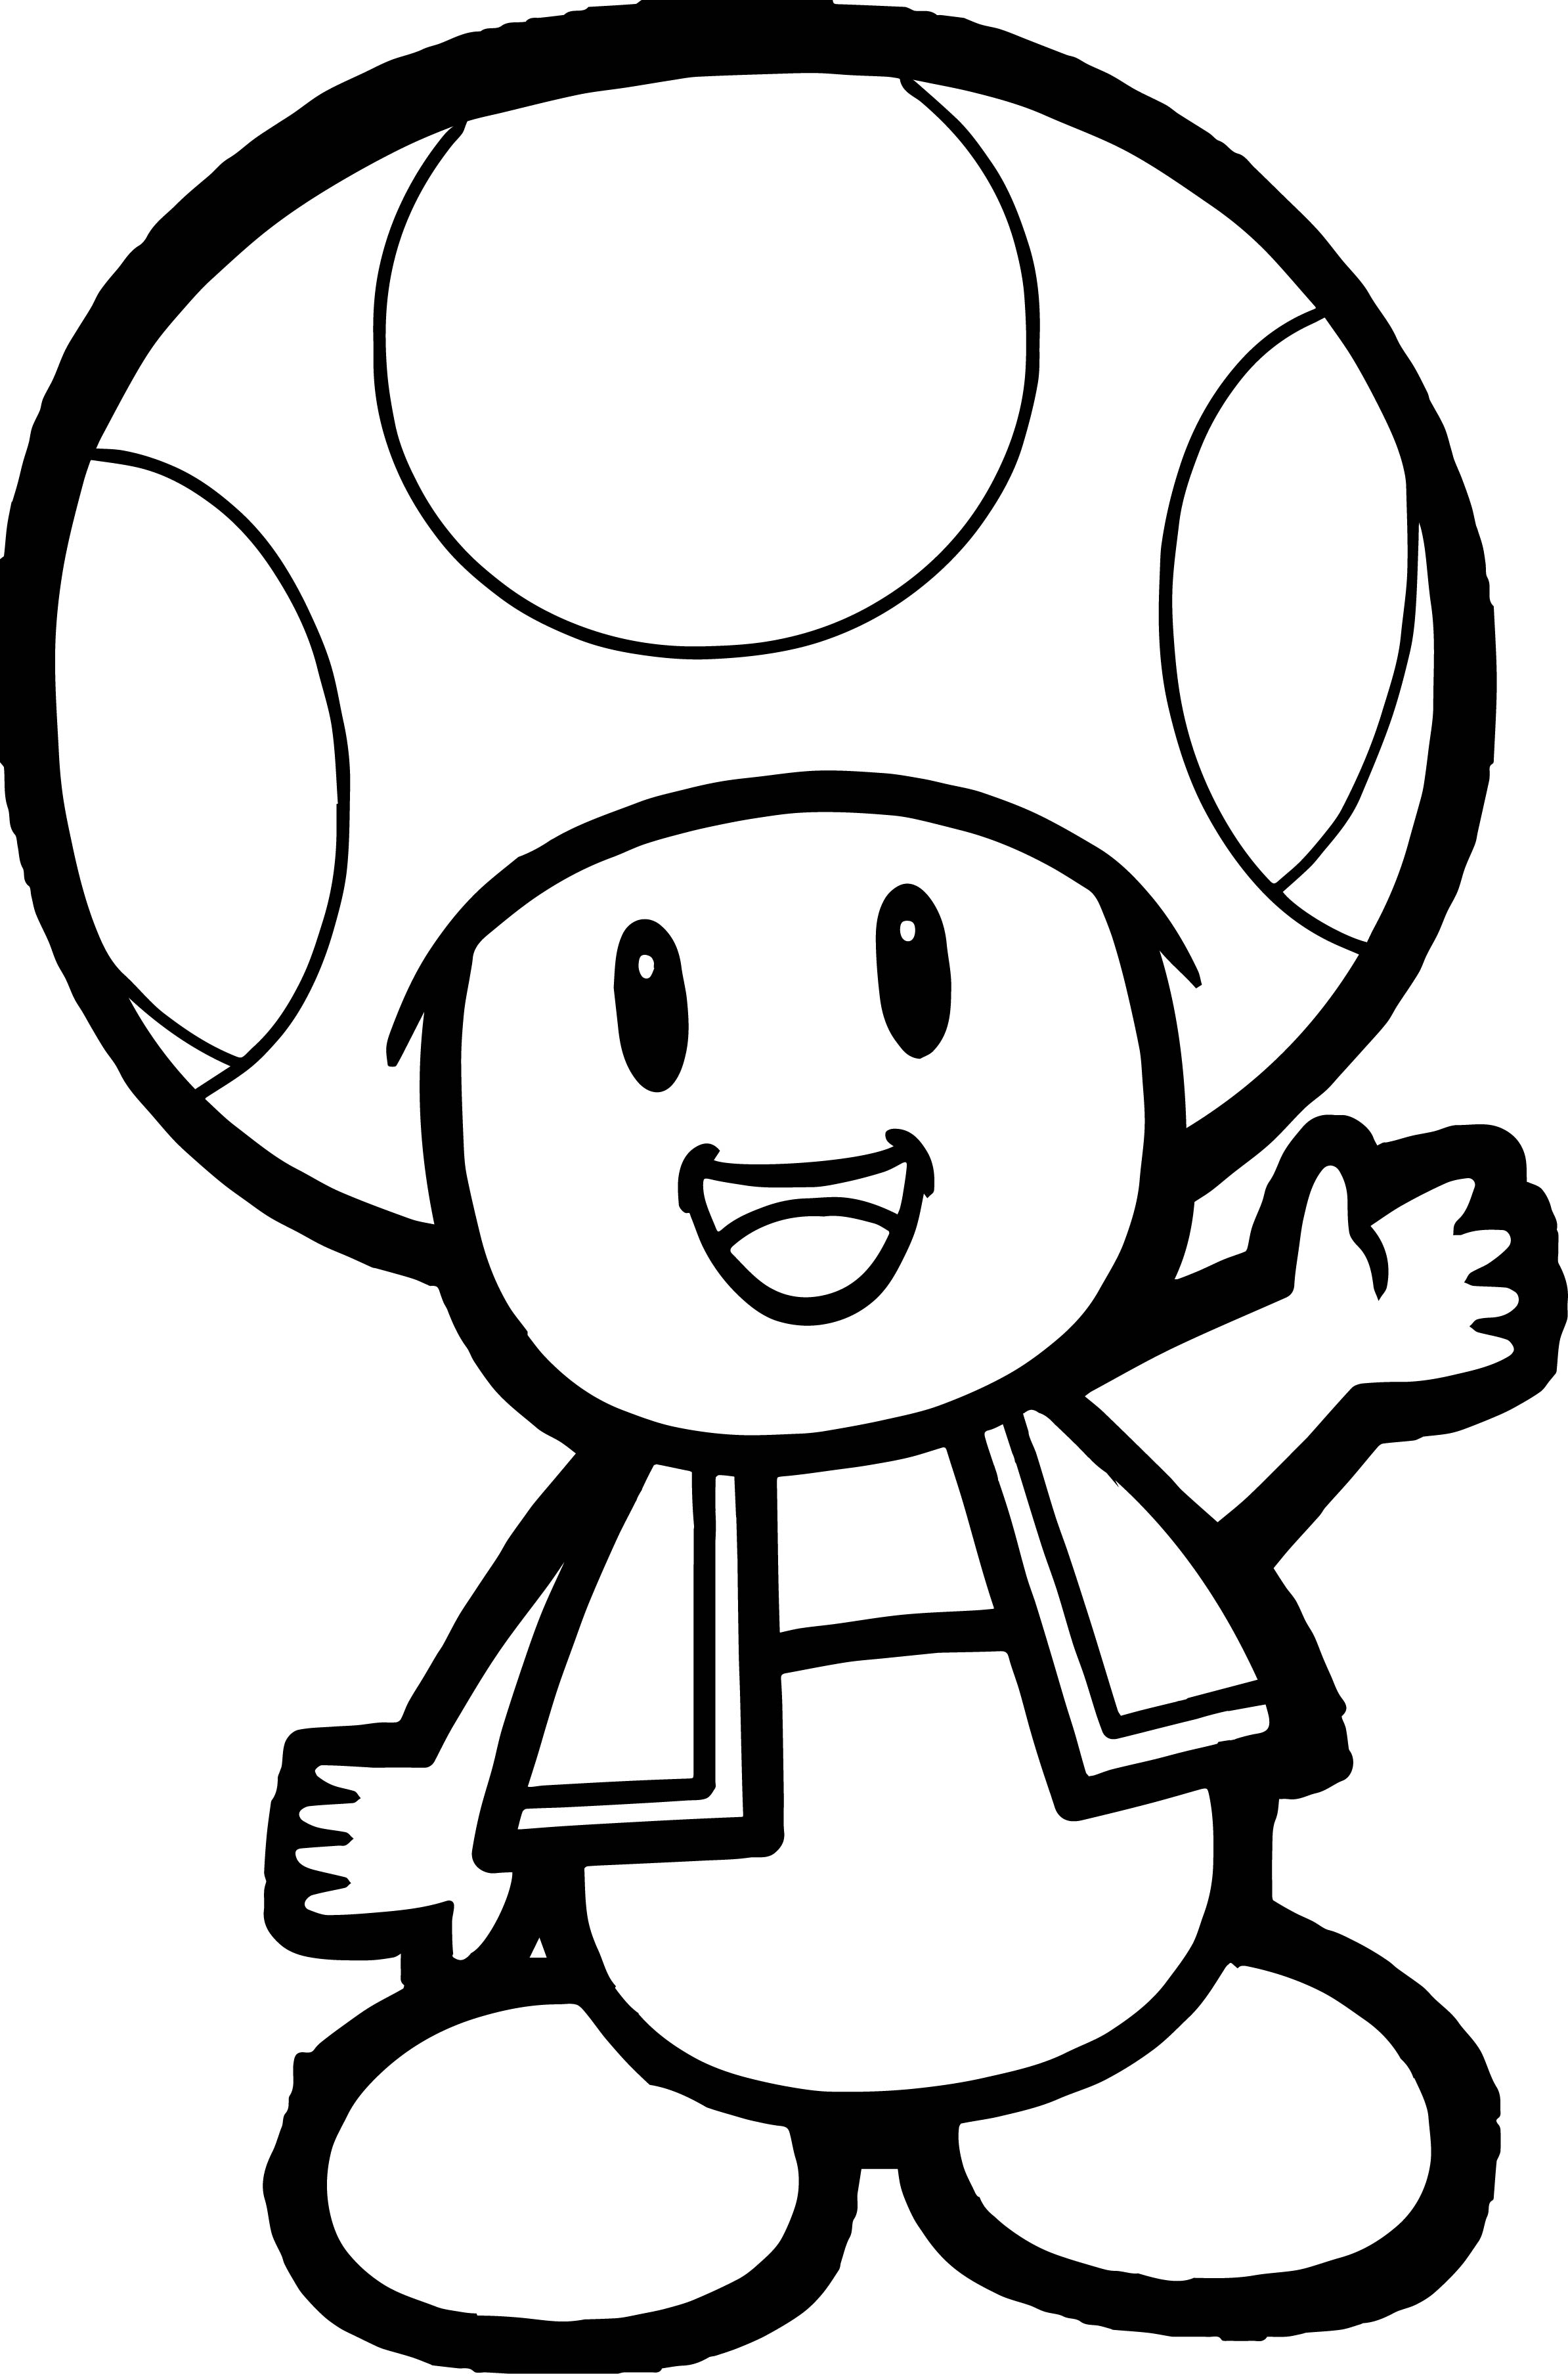 mario pictures to print mario coloring pages collection 2010 to pictures print mario